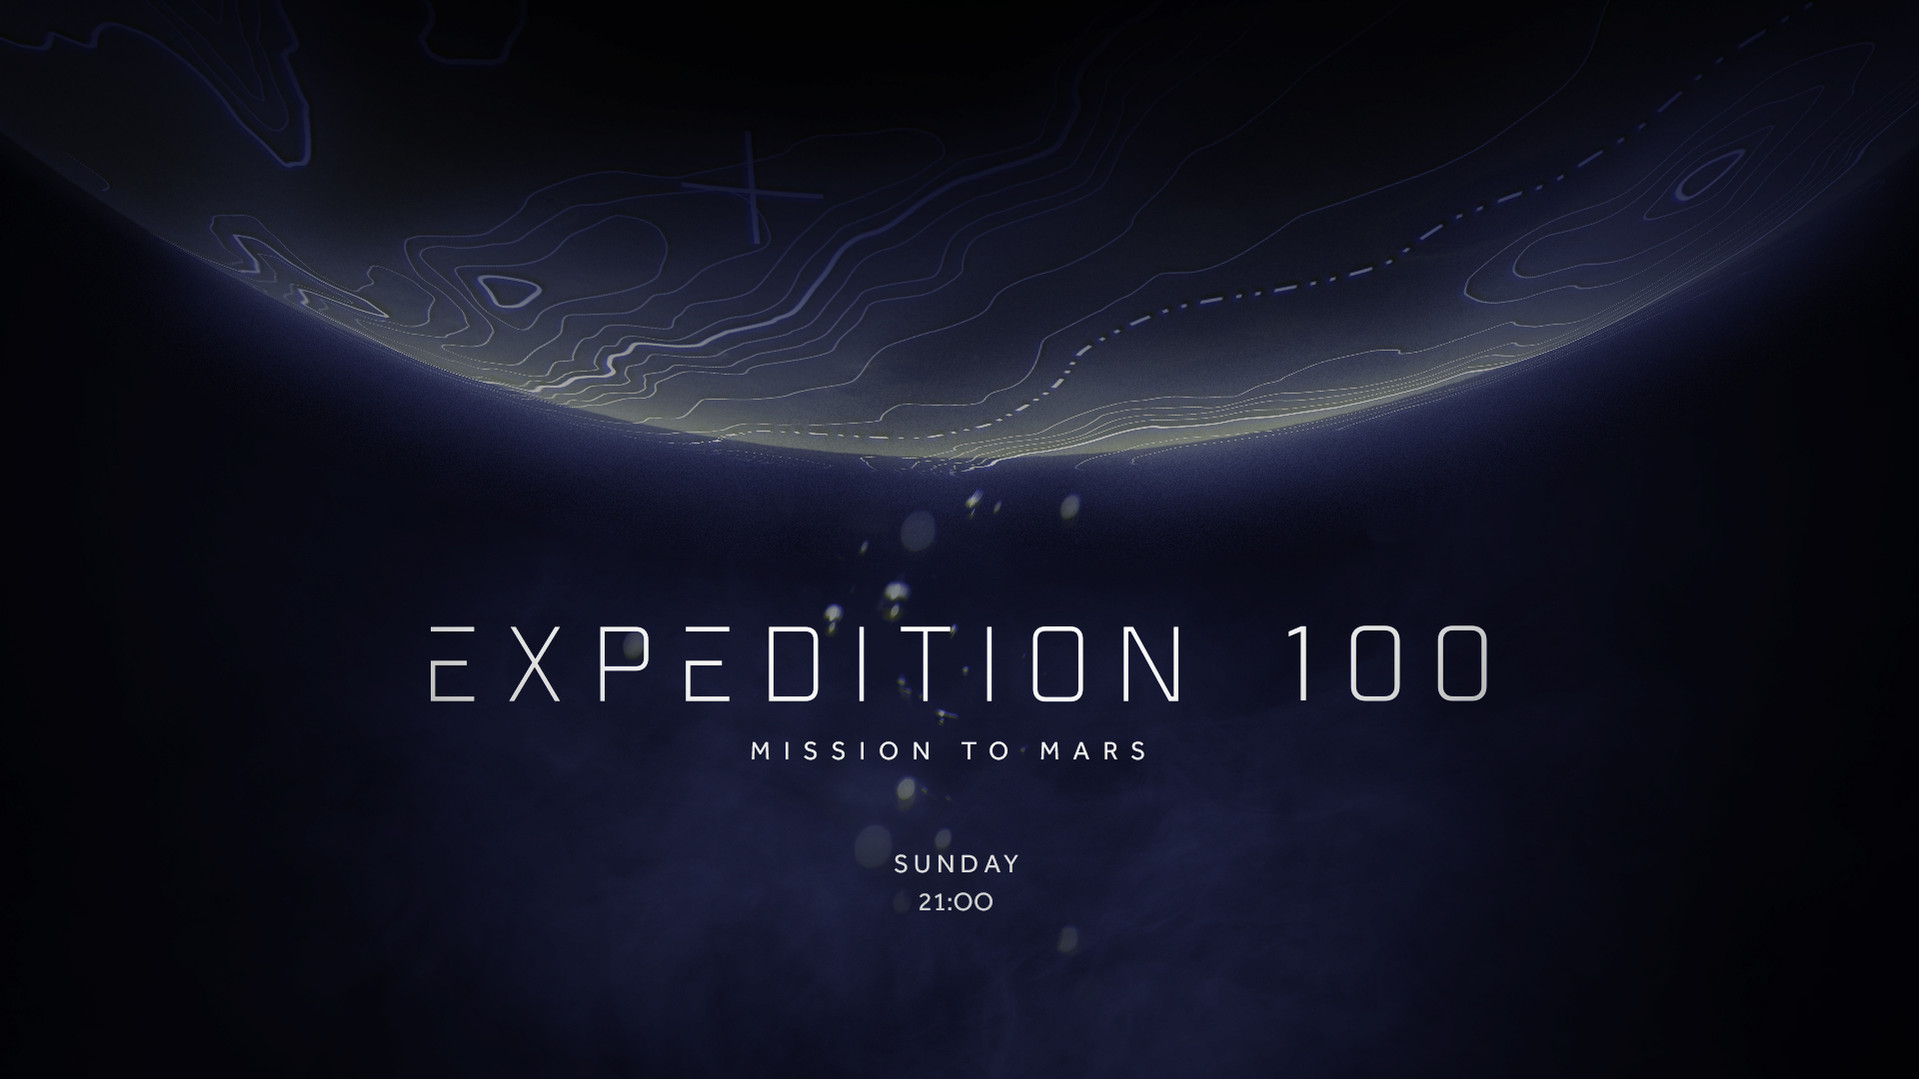 Expedition 100 [ Student Project ] - Board 04